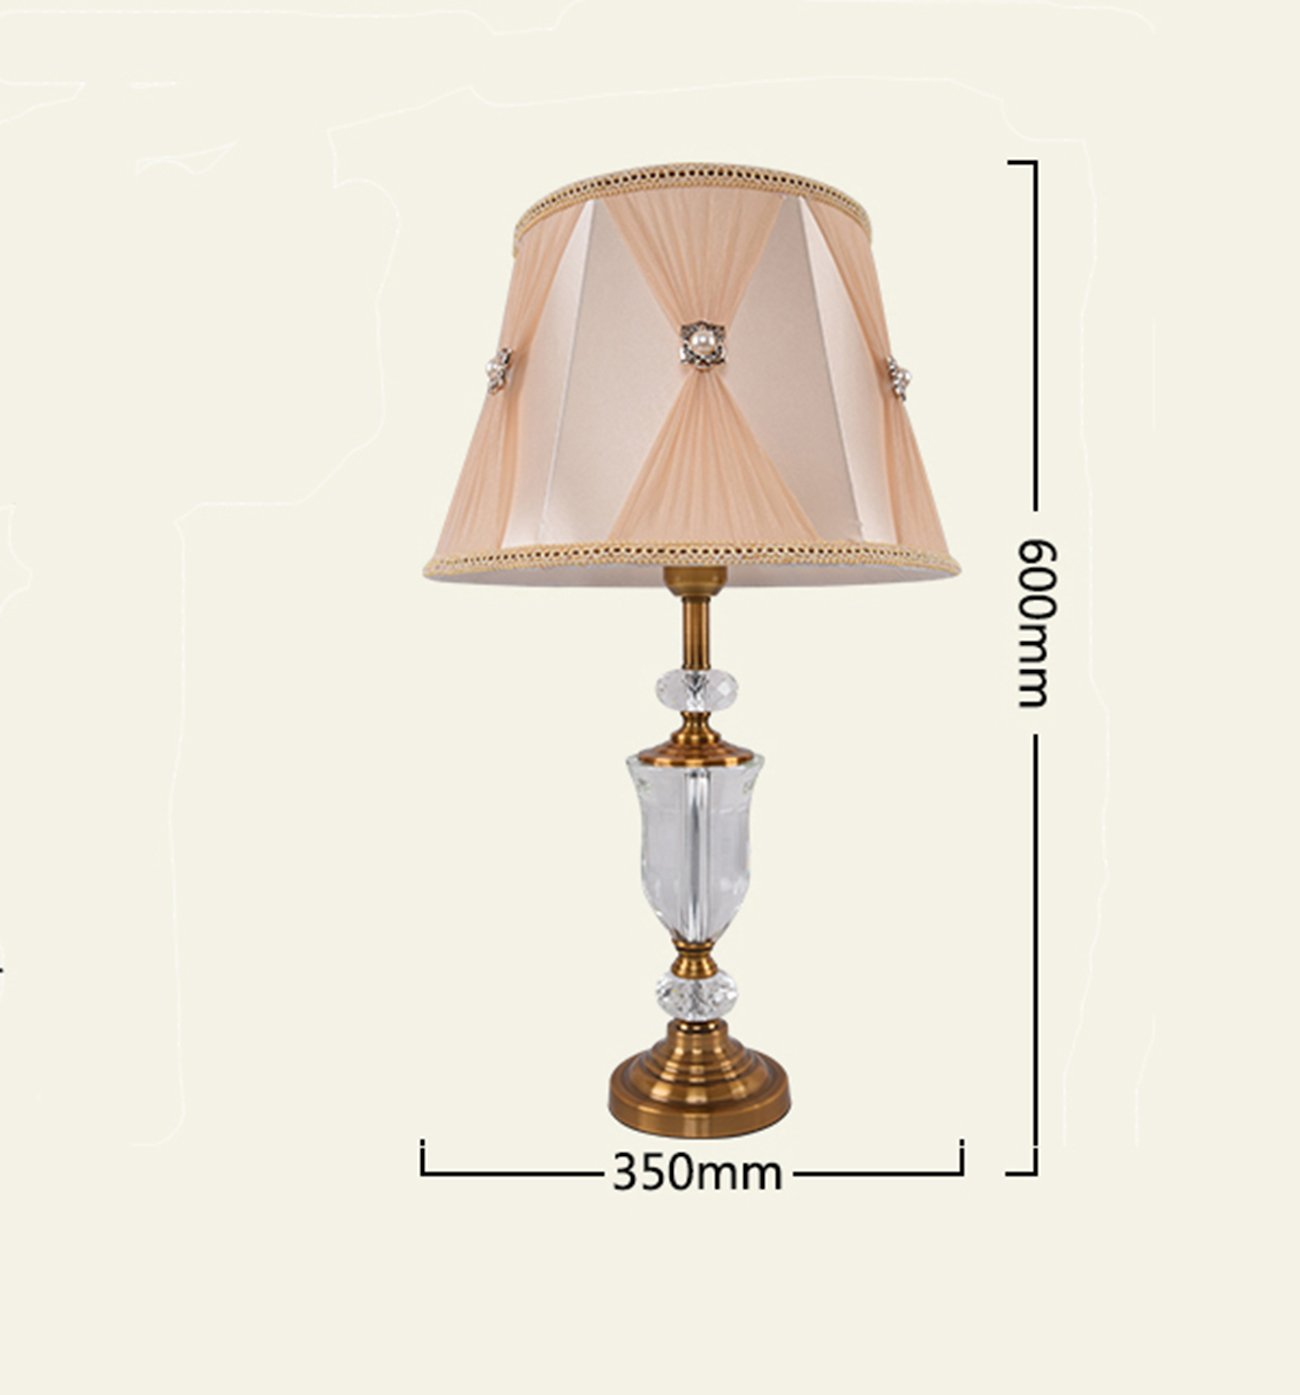 Garwarm Crystal Flower Table Lamps For Living Room Bedroom,3562CM/13.724.5 Inch WH